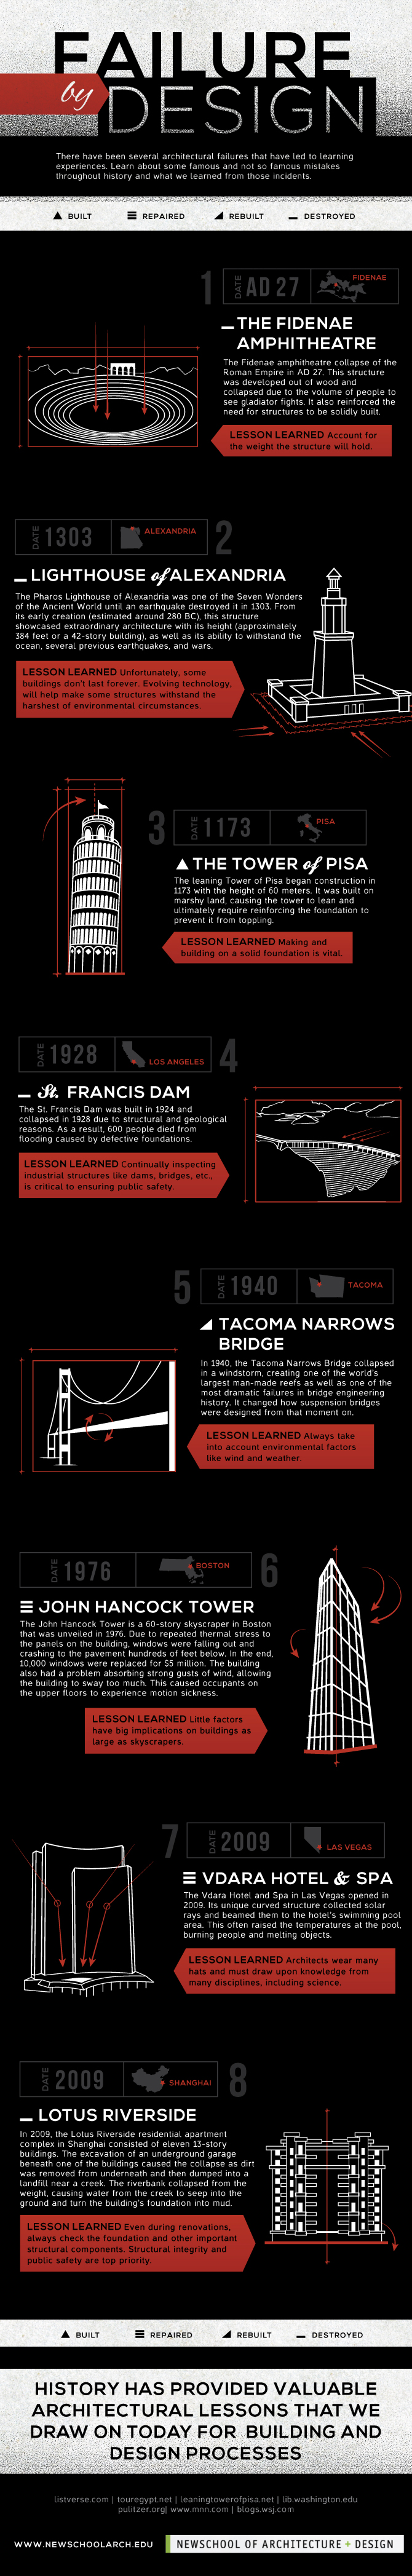 Architectural Blunders by NewSchool of Architecture + Design